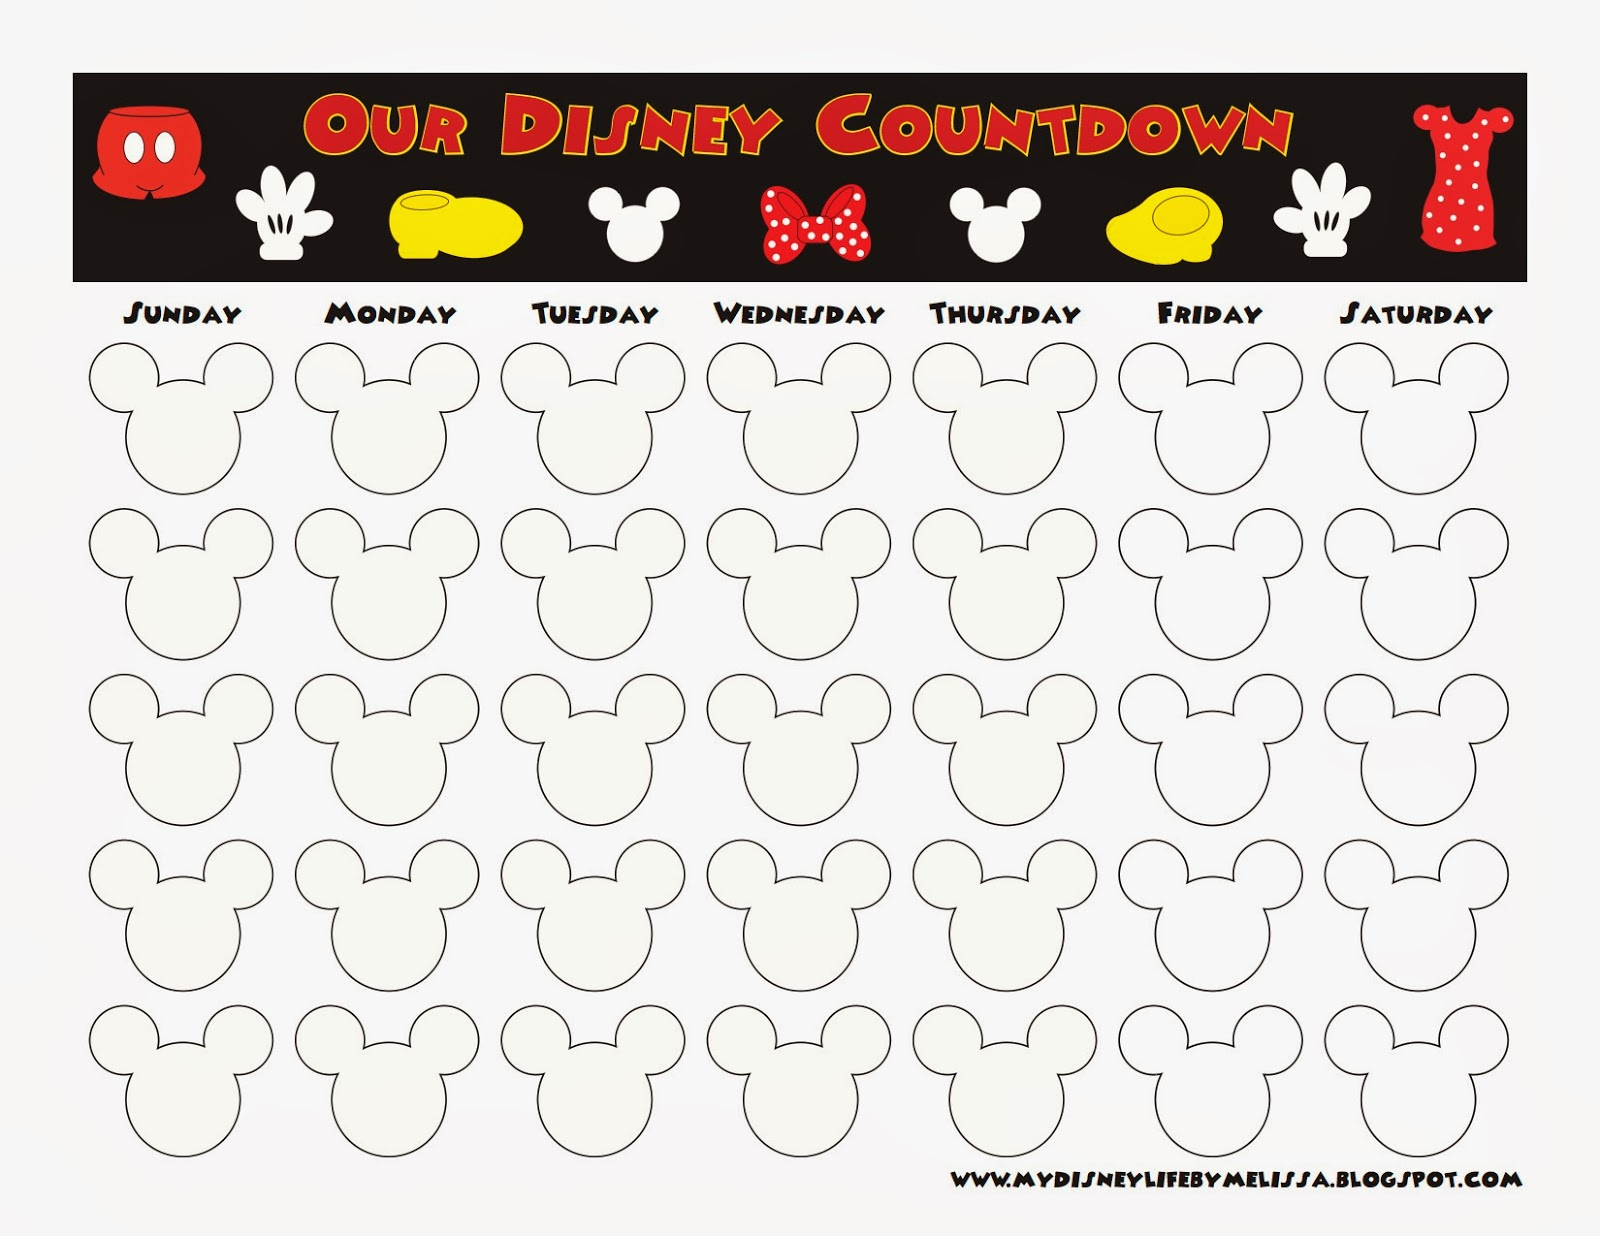 Countdown calendar printable calendar template for Make your own christmas countdown calendar